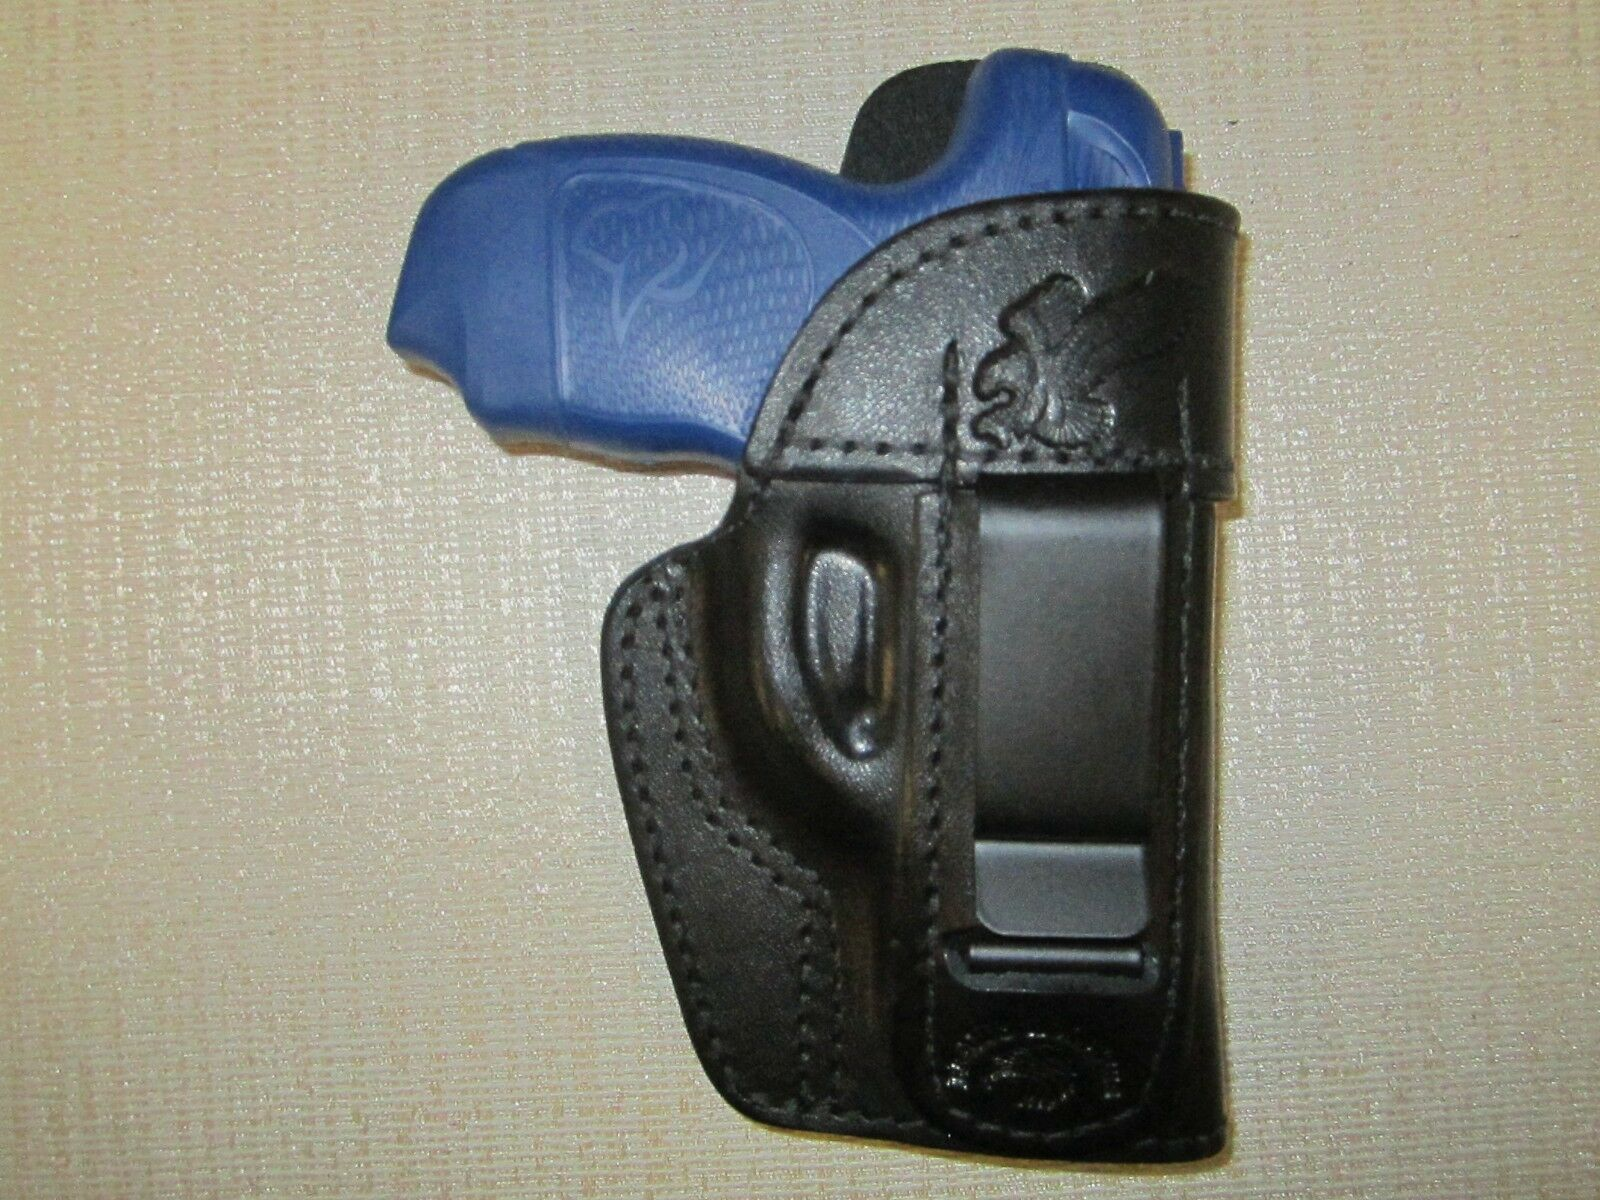 Taurus Spectrum iwb formed leather holster